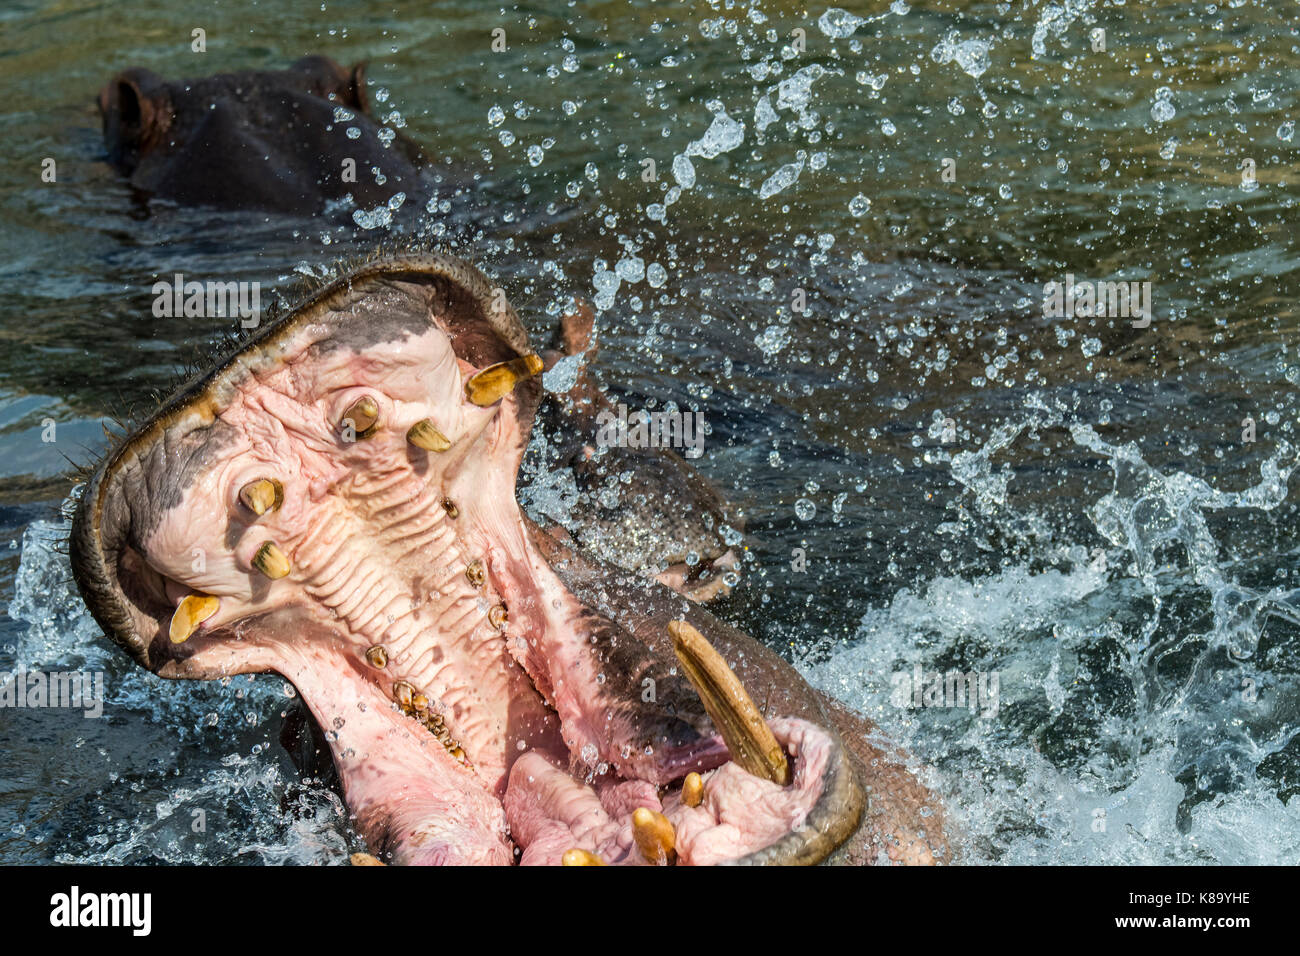 Common hippopotamus / hippo (Hippopotamus amphibius) in lake showing huge teeth and large canine tusks in wide open - Stock Image